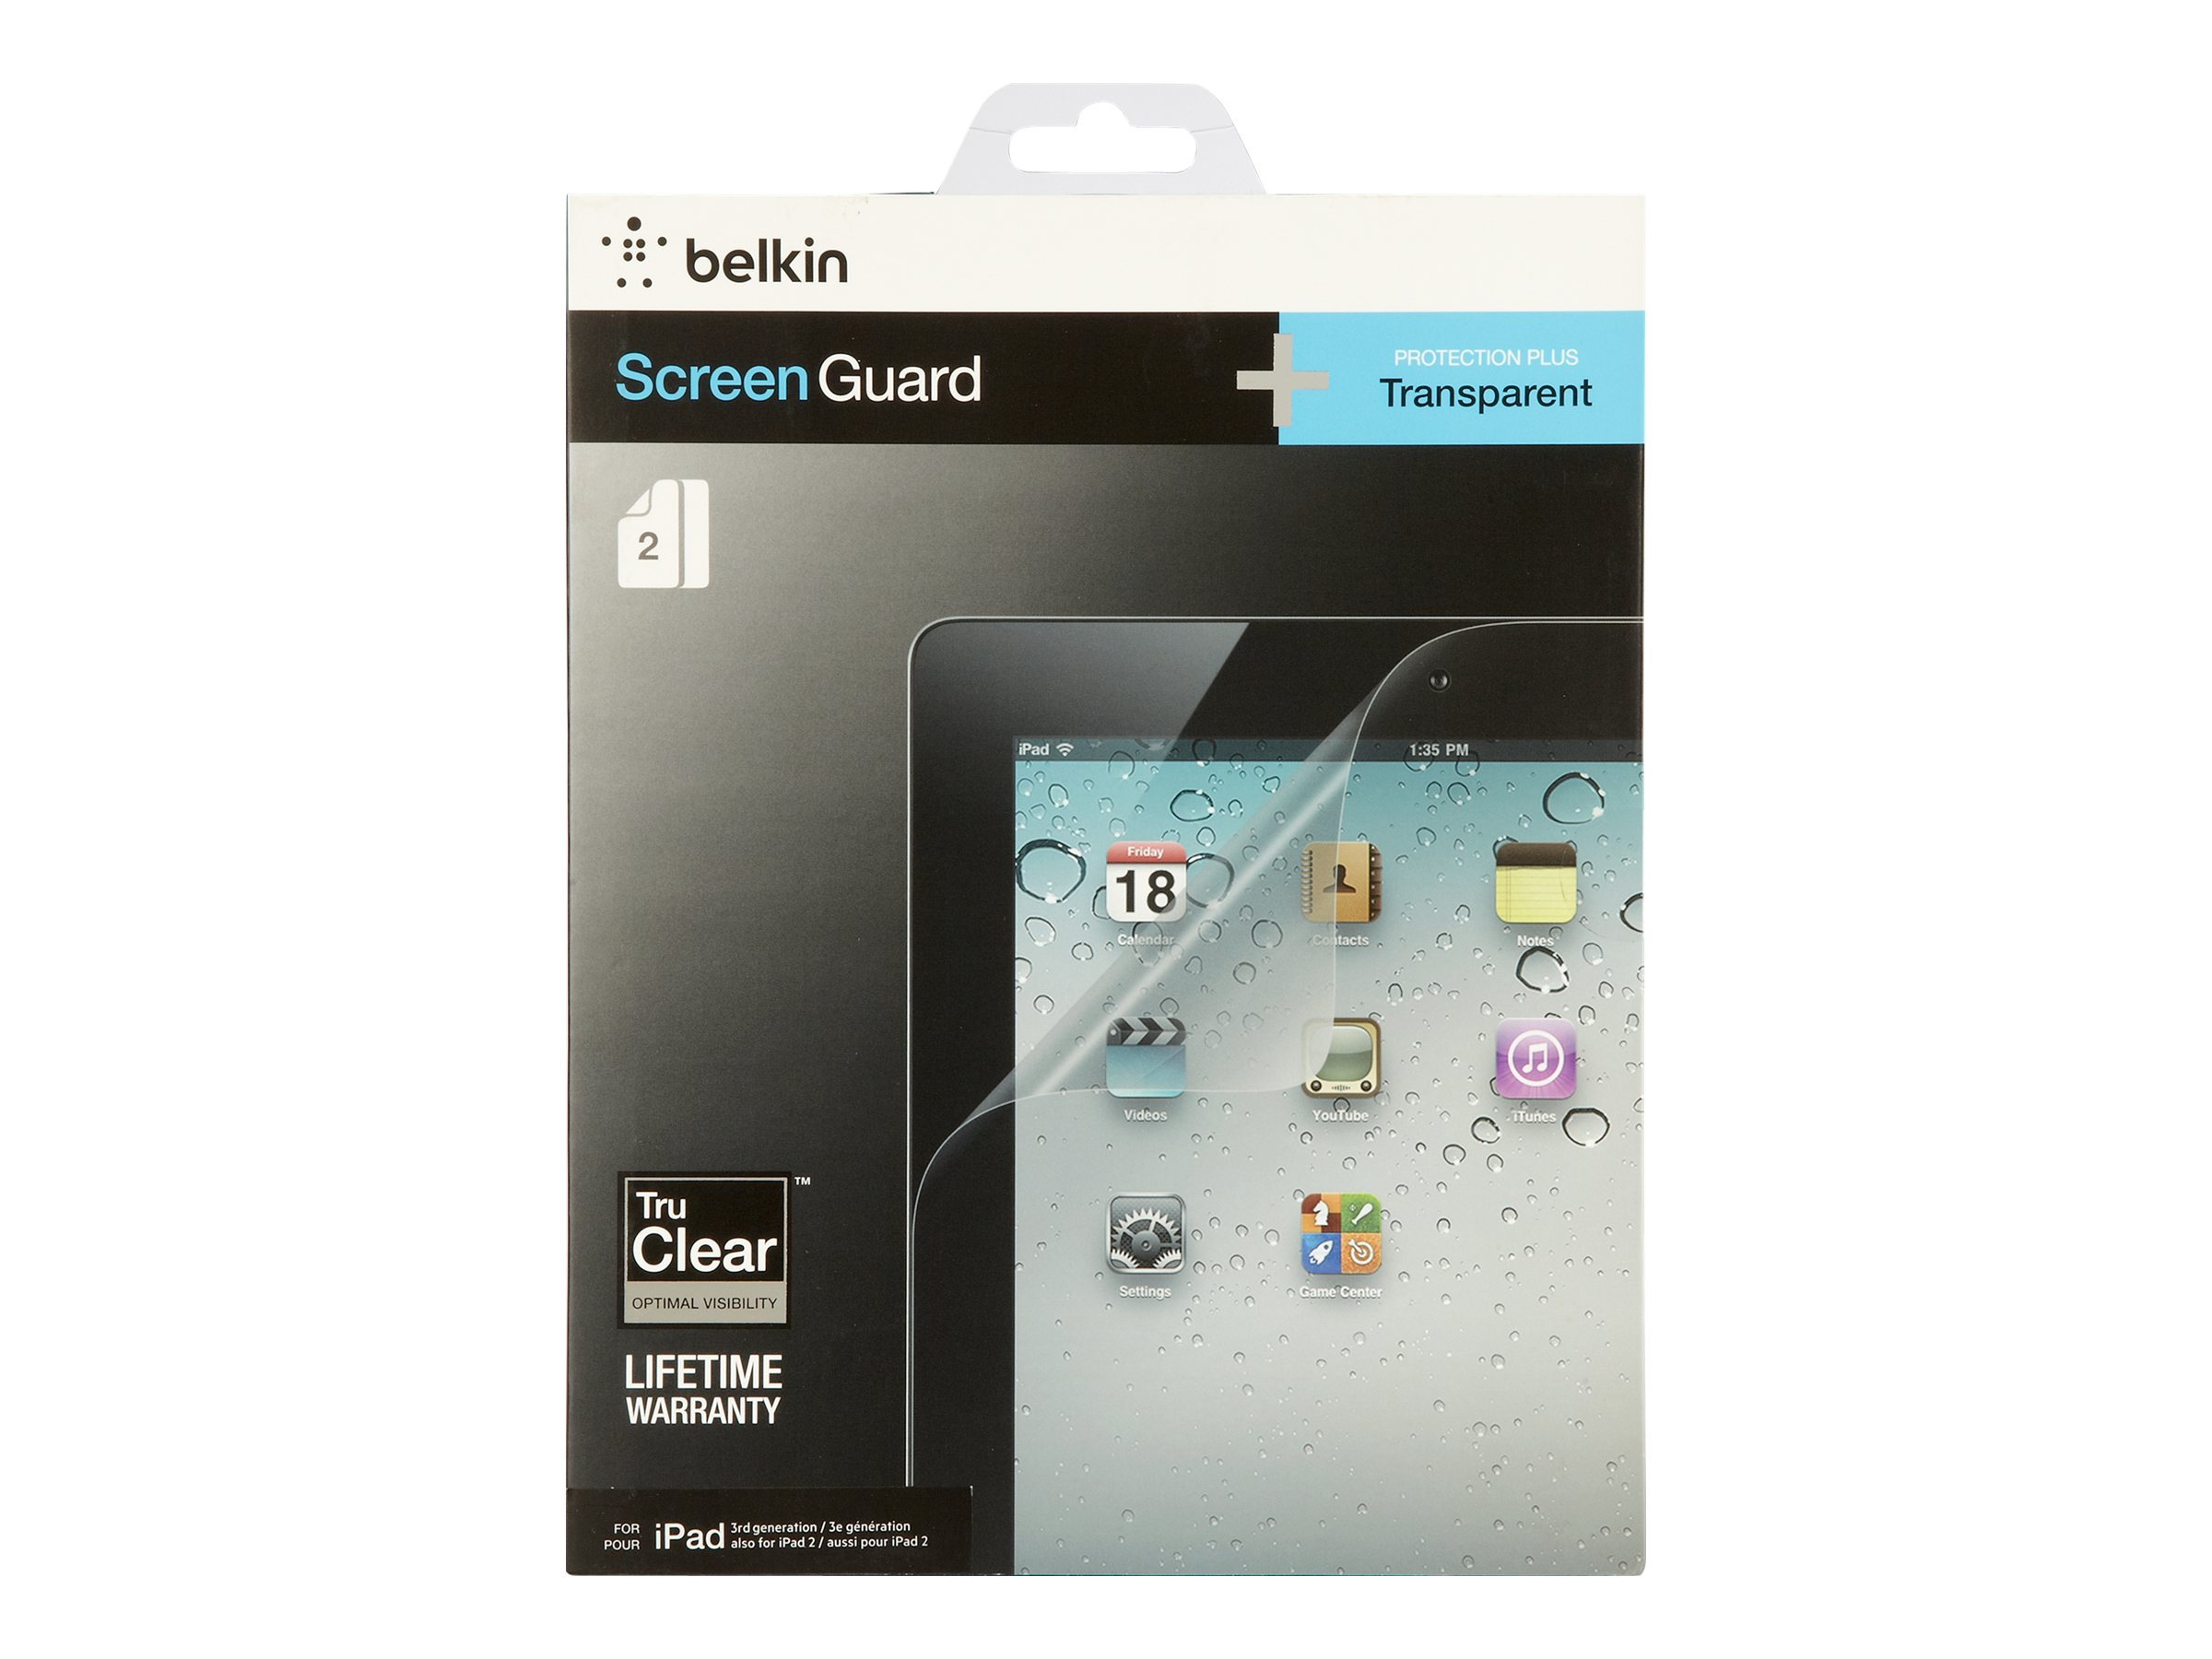 Belkin Transparent Screen Overlay for iPad 3G (2-Pack), F8N798TT2, 14557061, Protective & Dust Covers